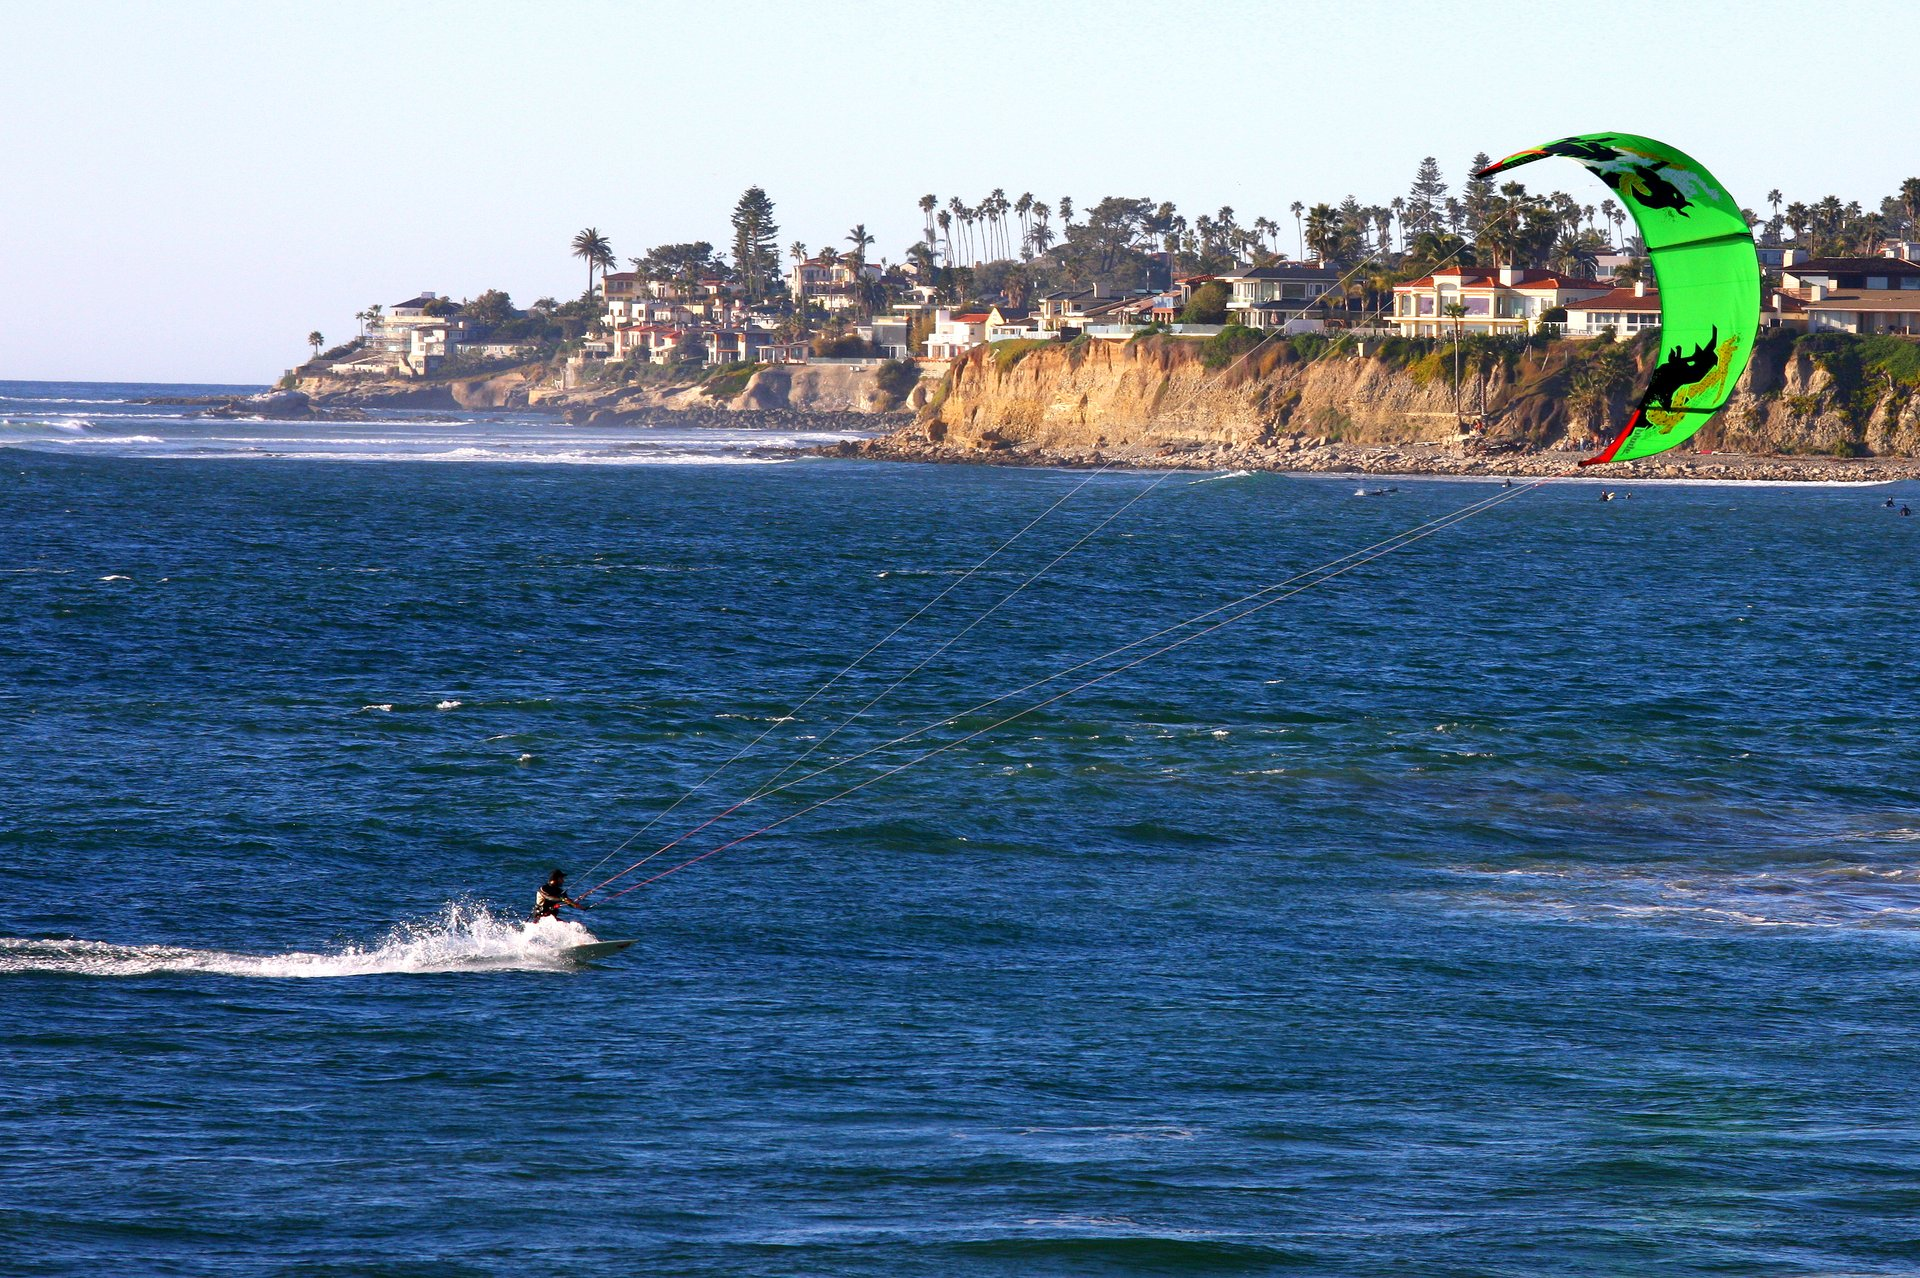 Kitesurfing and Windsurfing in San Diego 2020 - Best Time